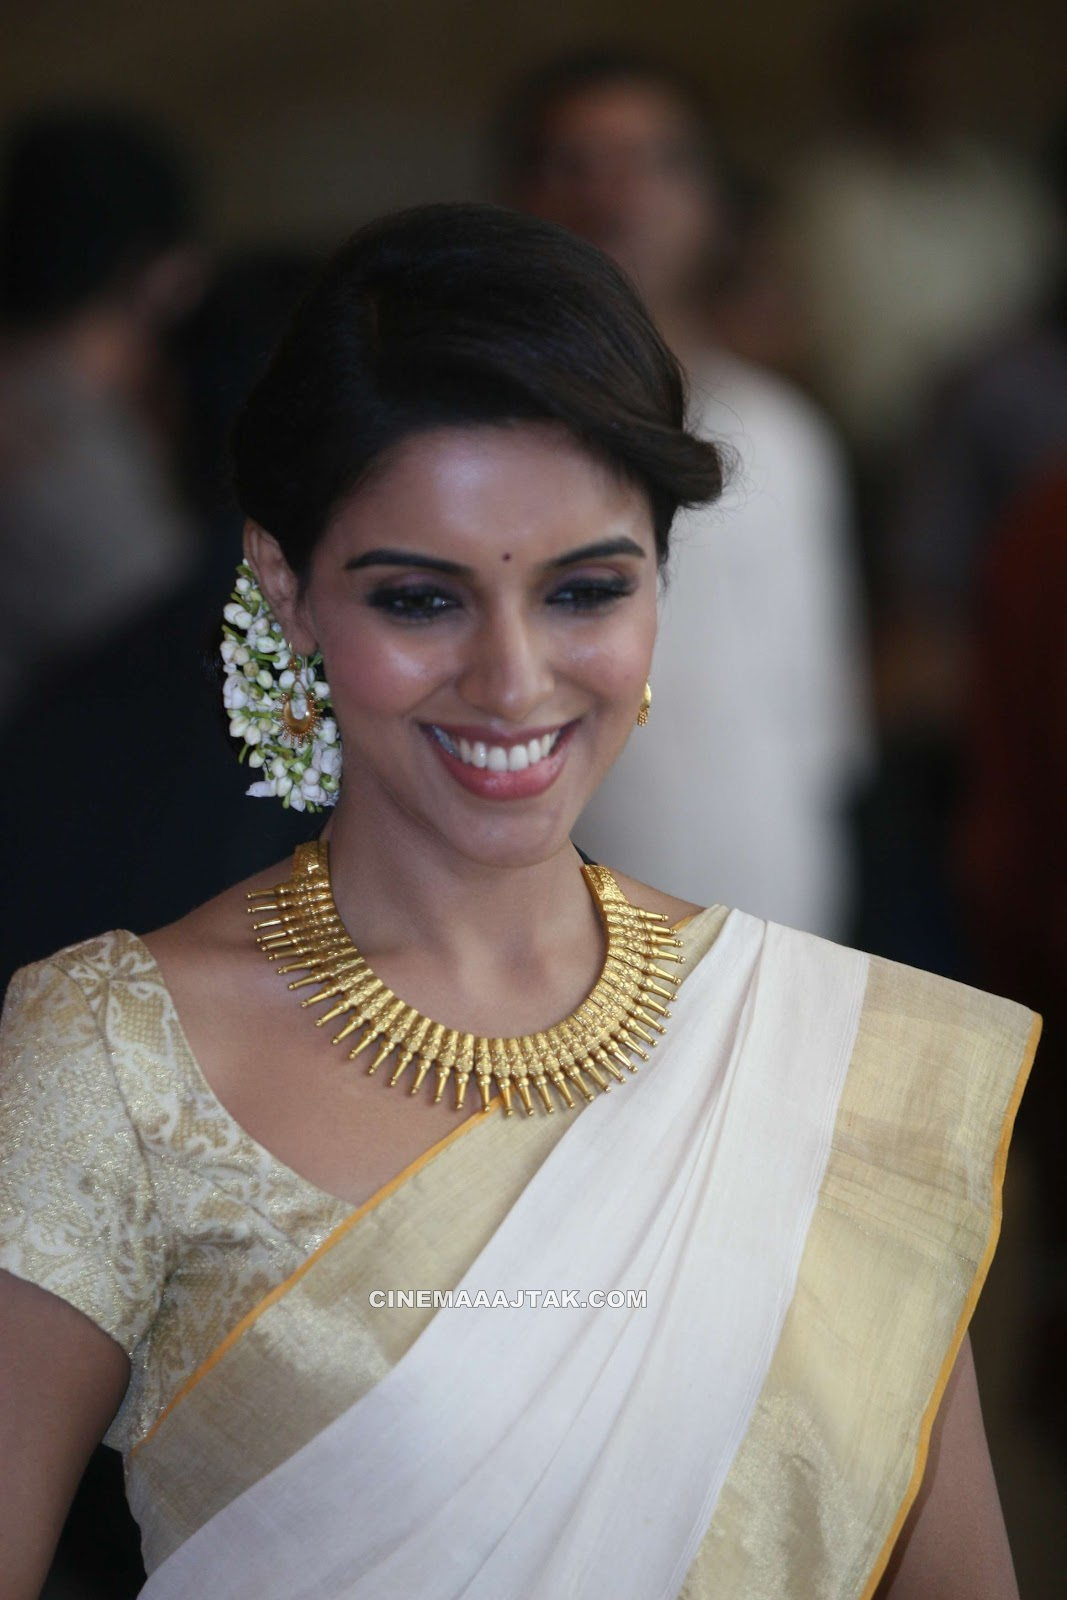 Saree jewellery images  best groupon images on pinterest  stud earring earrings and